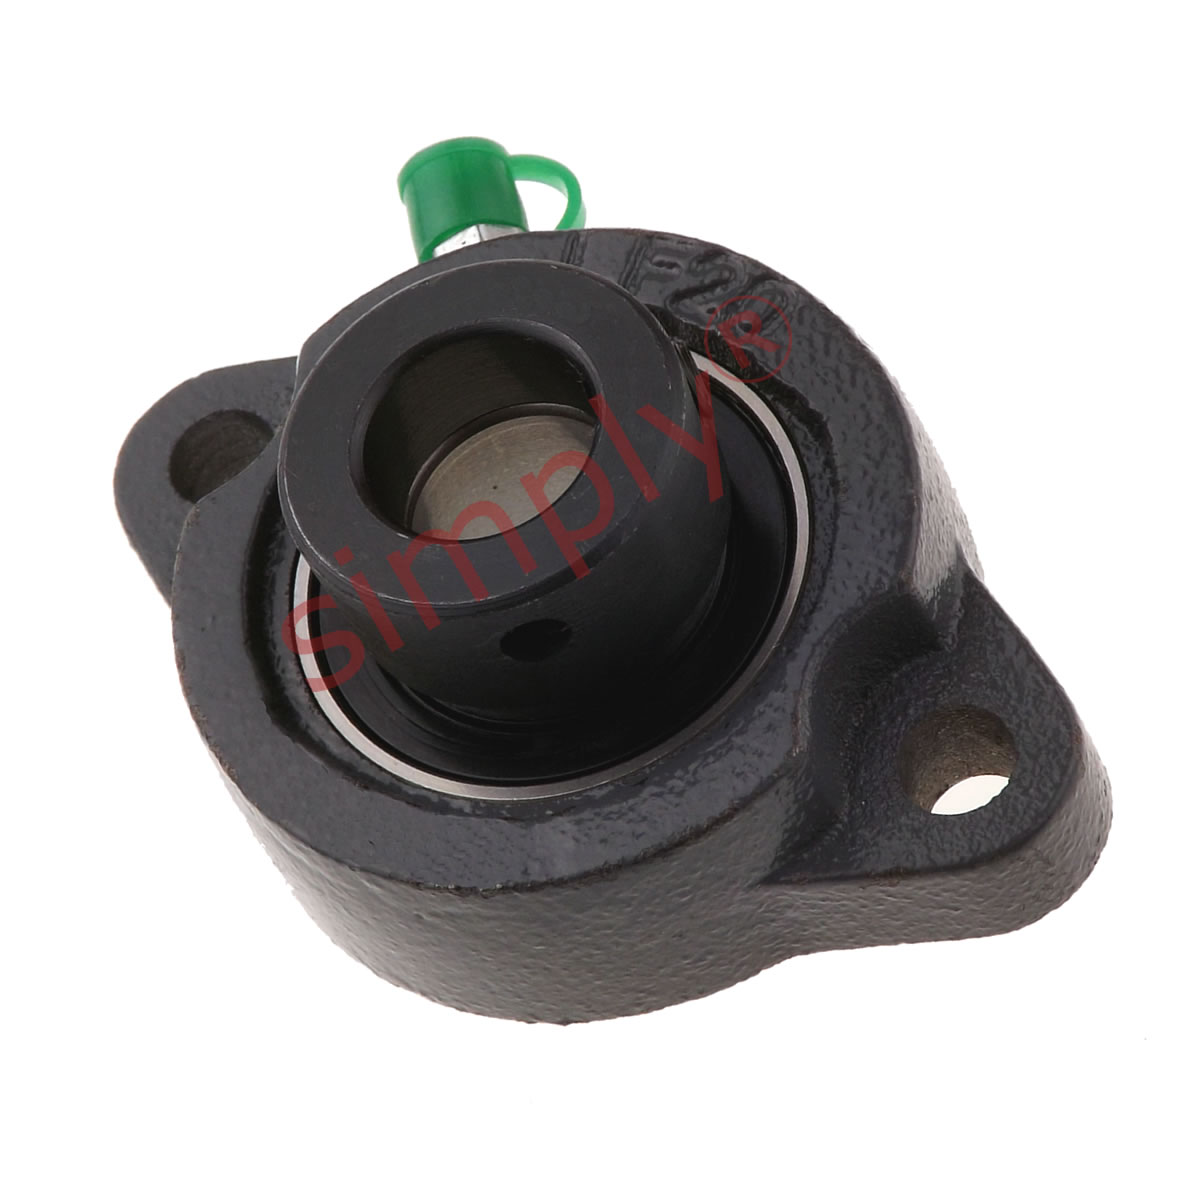 Salf imperial two bolt cast iron oval housing with